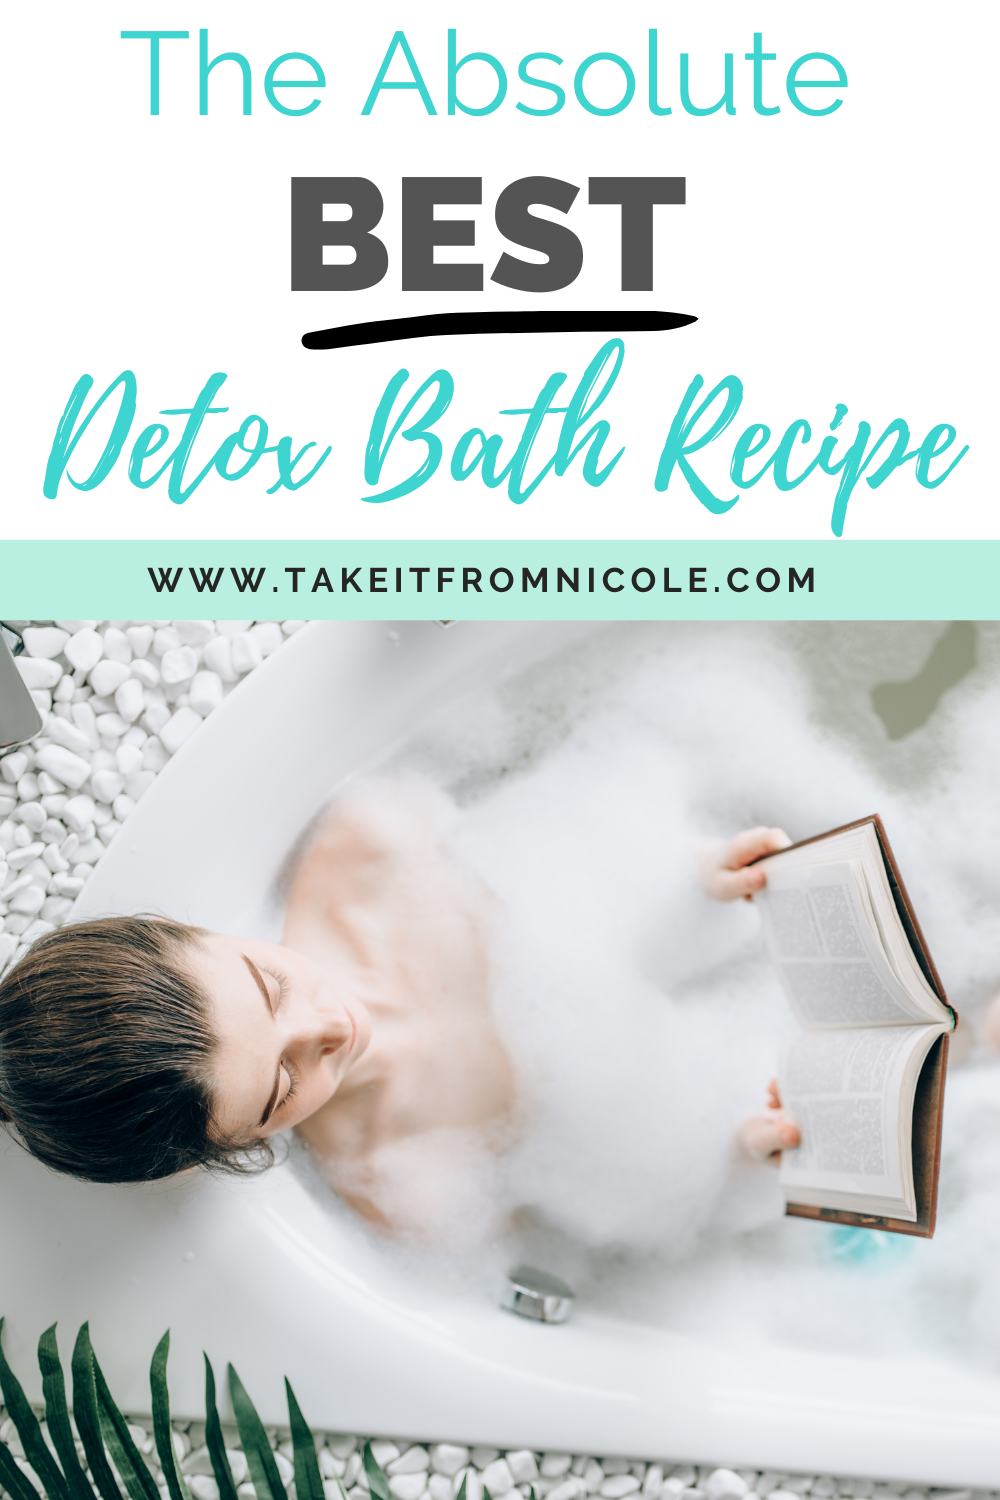 The best detox bath recipe to help you feel better when you are sick. Sweating out the bad stuff and rehydrating with water always makes me feel better.